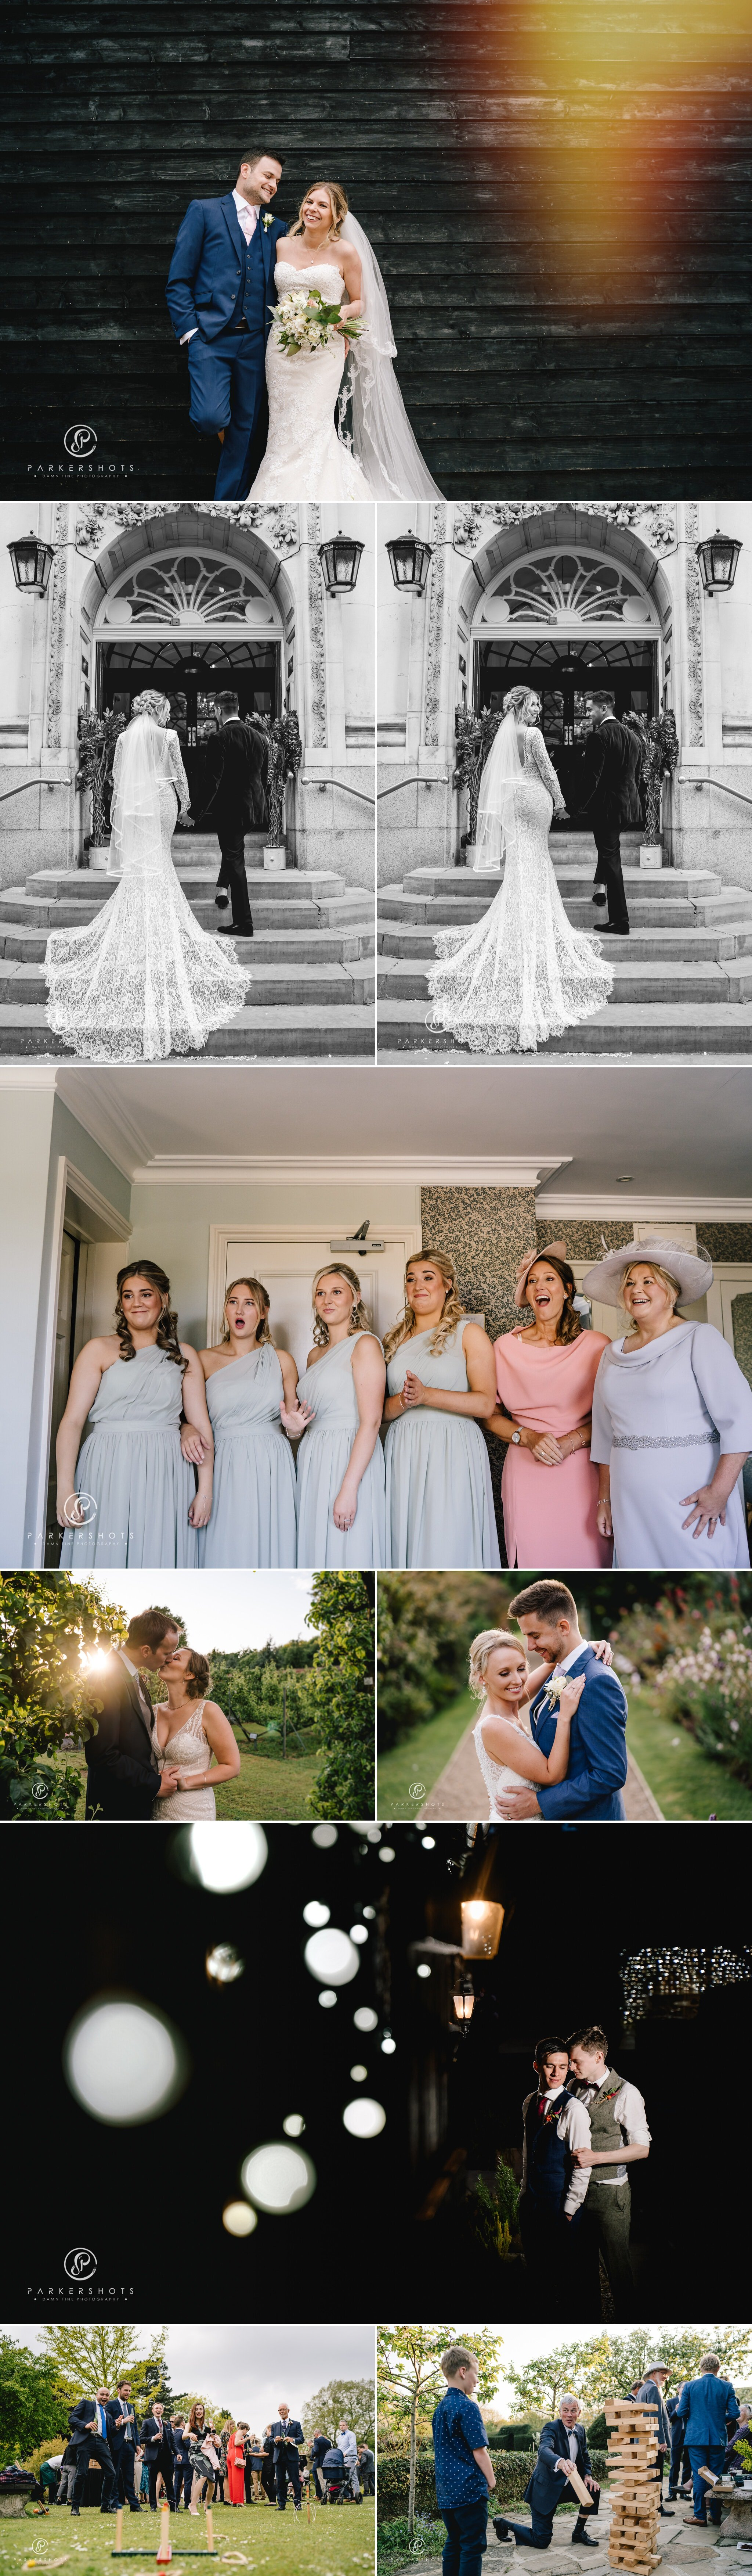 Best of HIgh-end Wedding Photographers 2019